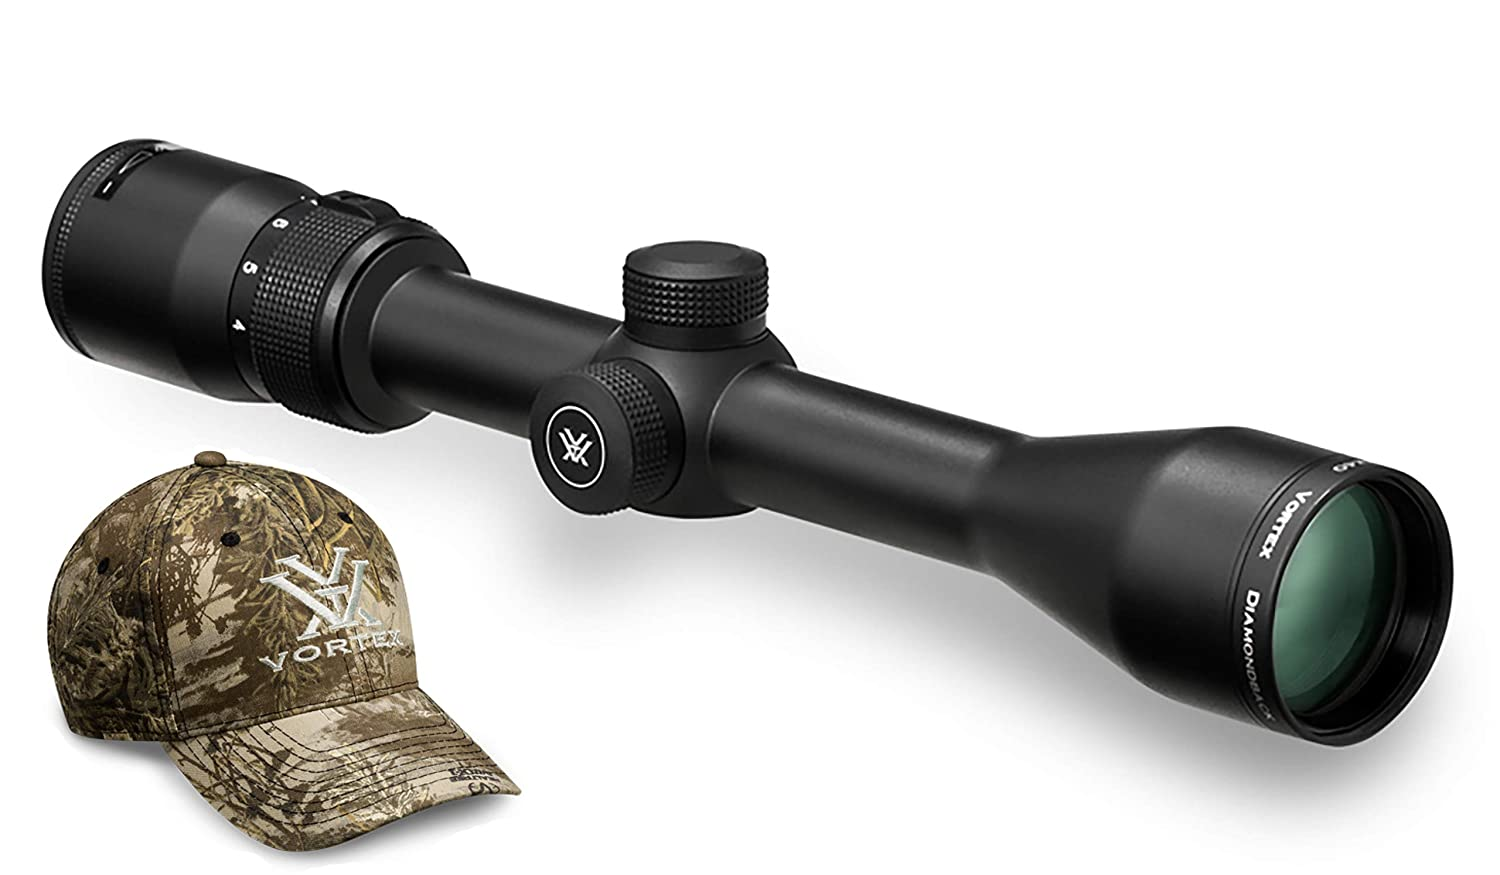 2. DIAMONDBACK® 4-12X40 RIFLESCOPE